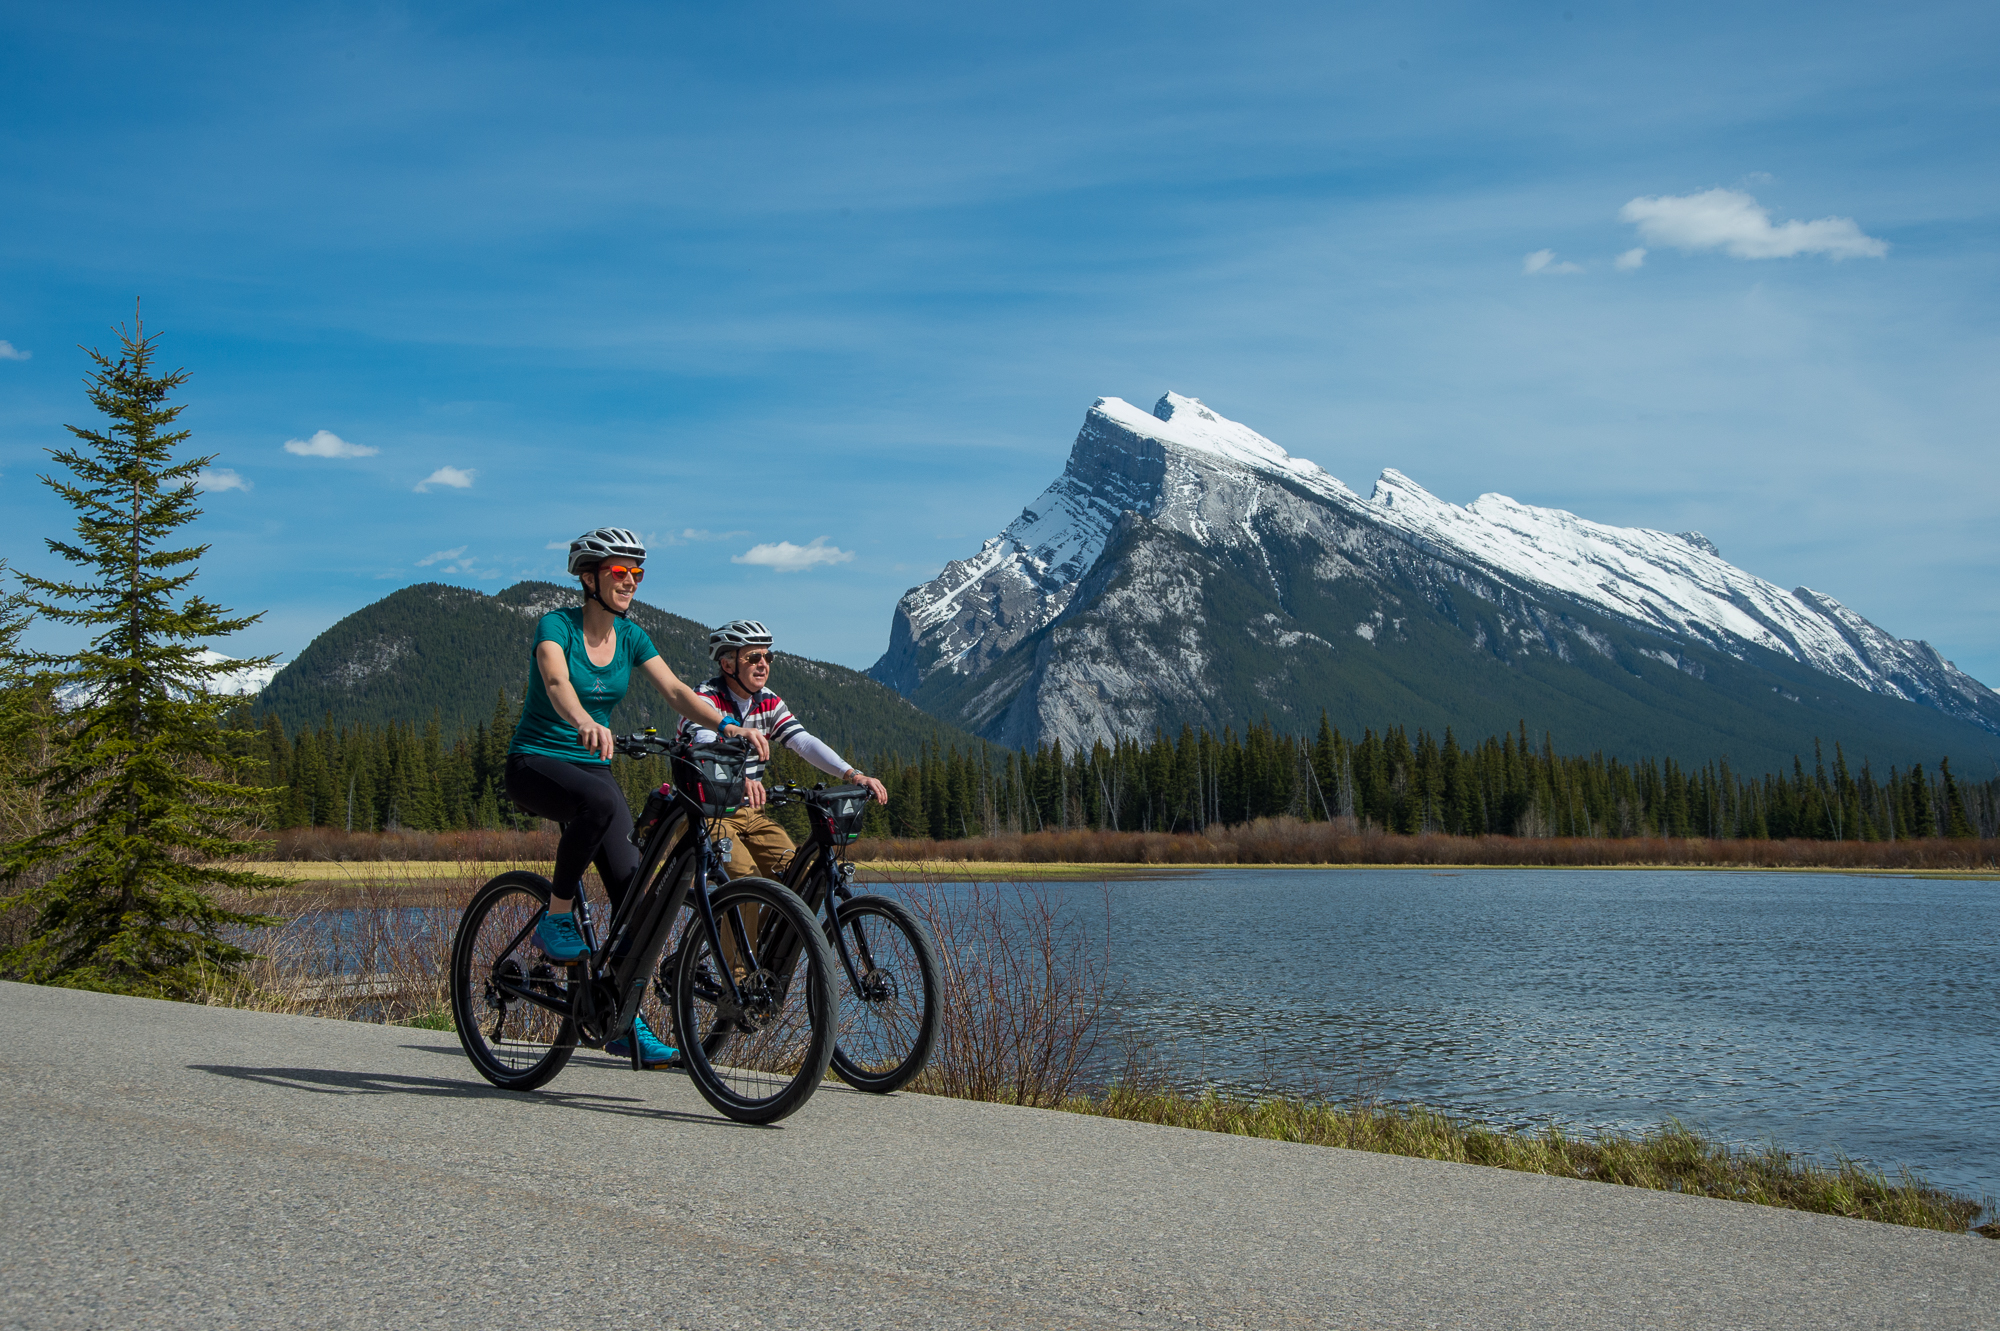 Riding past Vermillion Lakes, with Mount Rundle in the background.